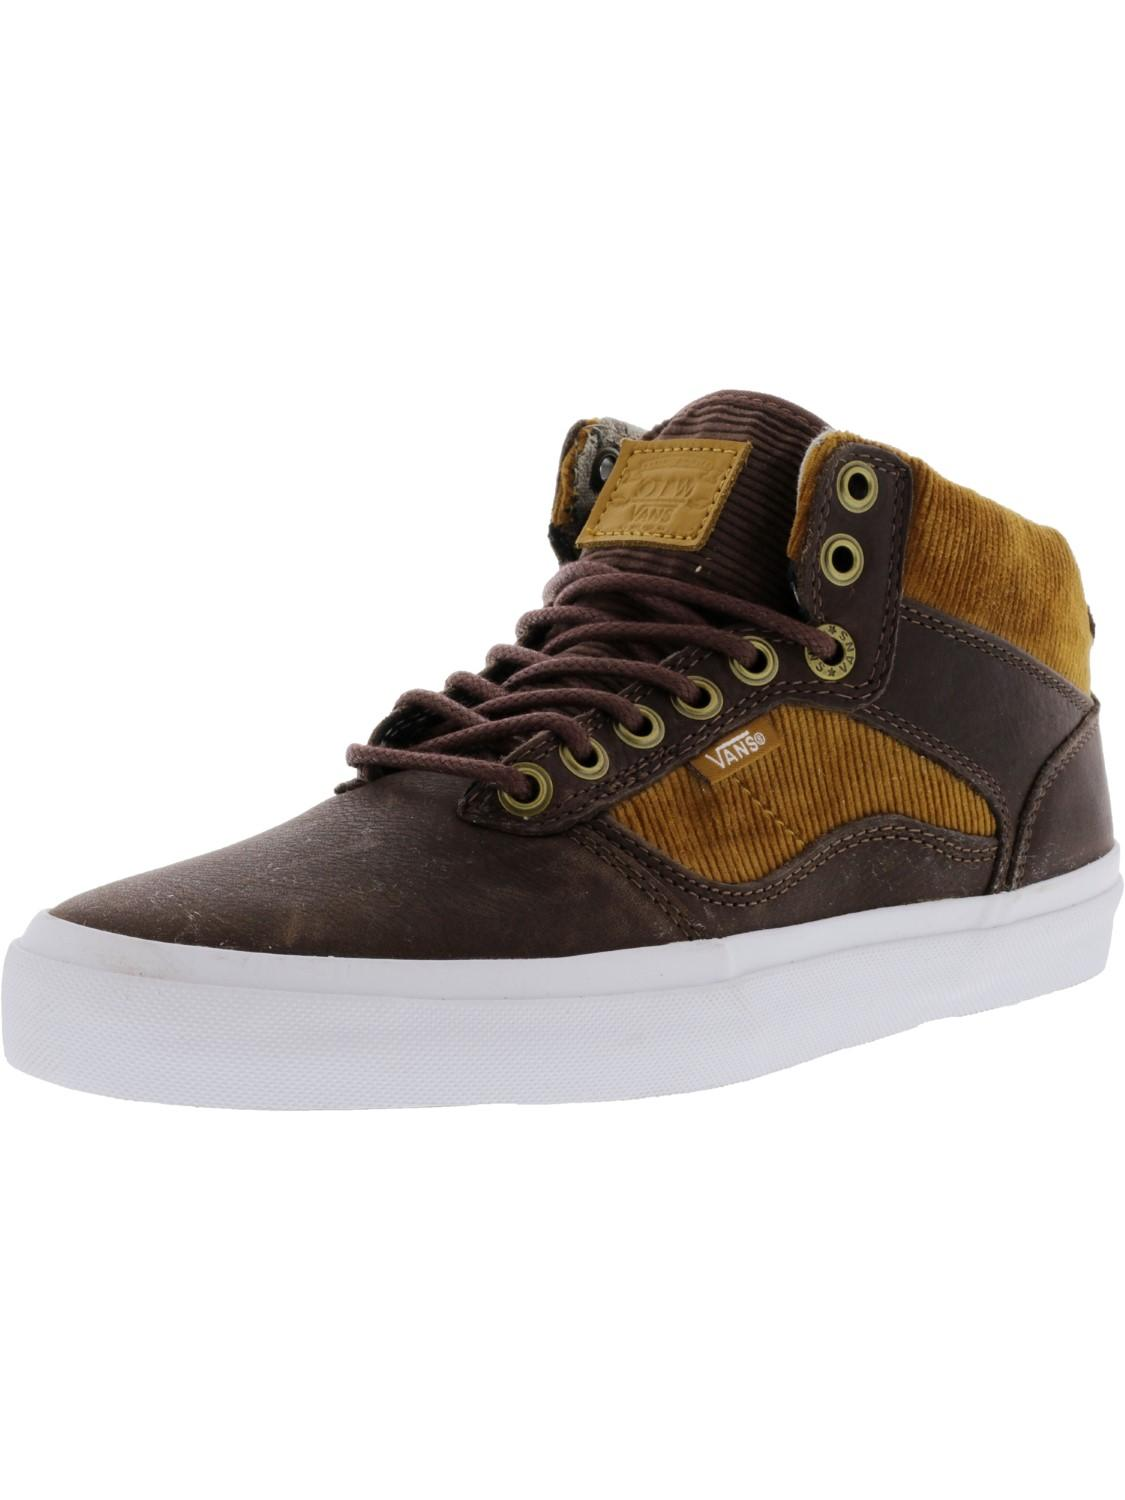 2c43f714a7e044 Lyst - Vans Bedford Duck Hunt   White Mid-top Leather Skateboarding ...